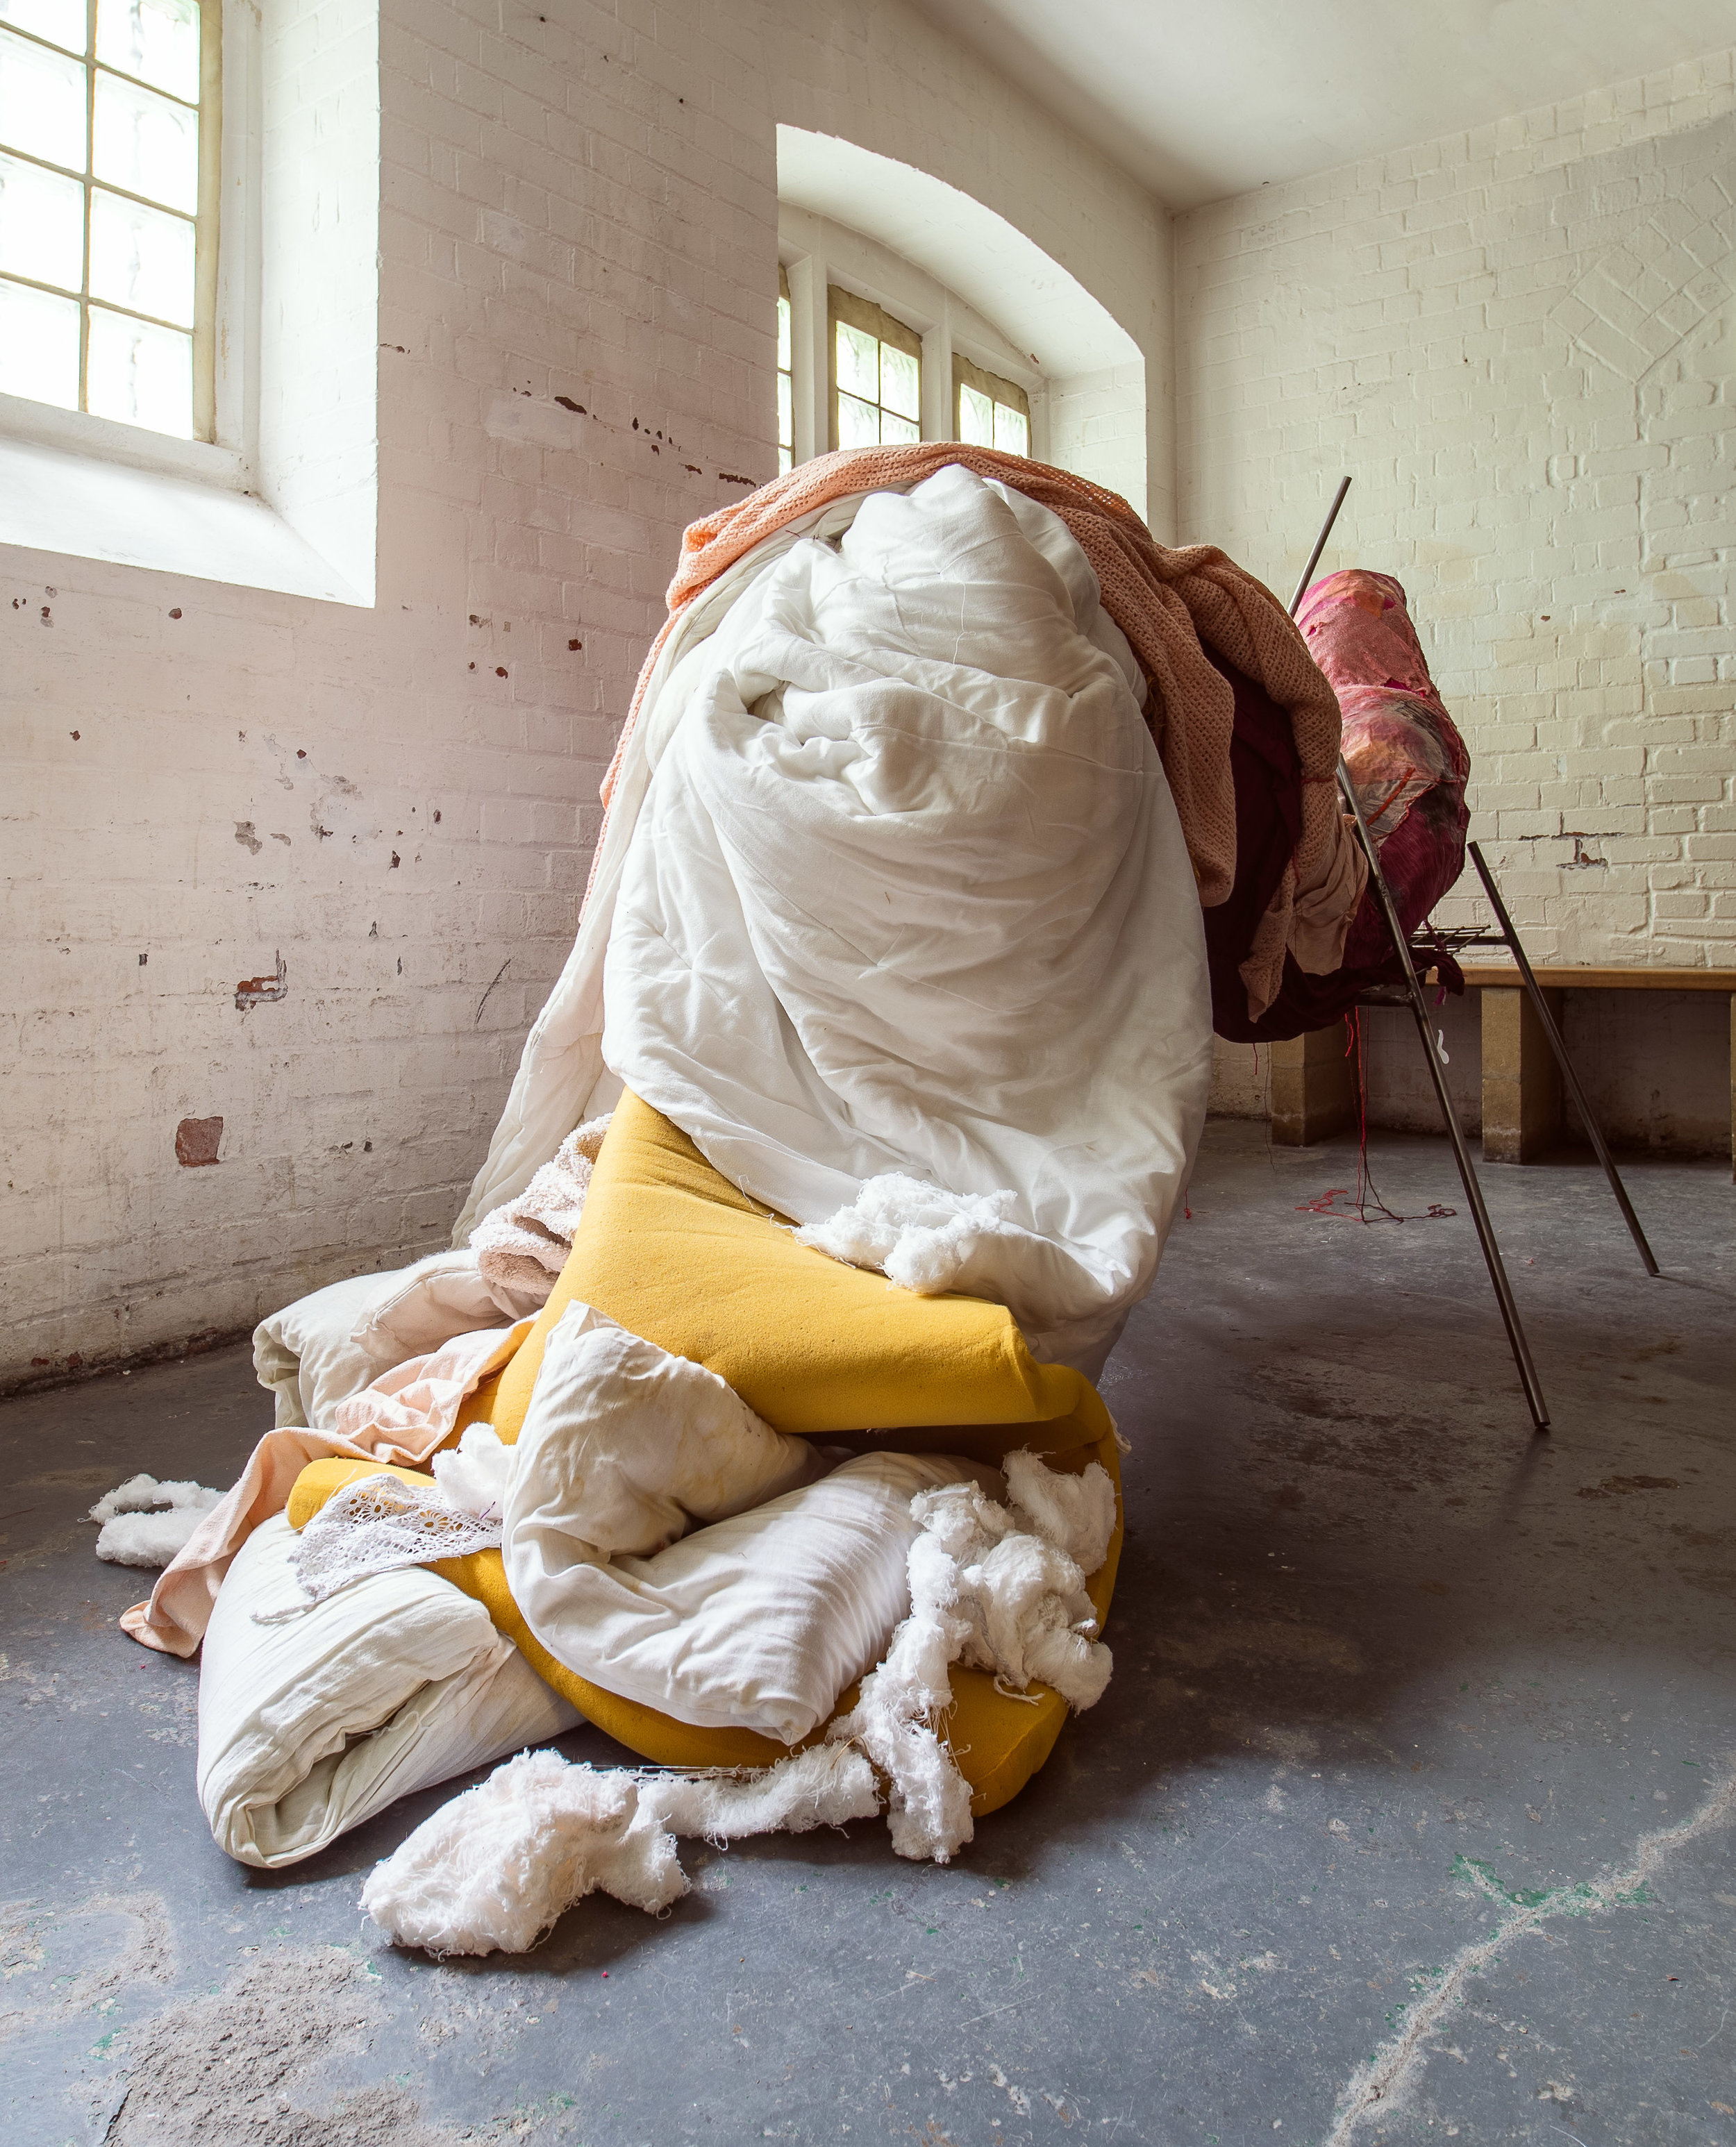 Tongue, 2019,    330cms (l) x 158cms (h) x 135cms (w)   Recycled and found materials: fabric, old clothes died with avocado pits, foam, sponge, copper wire, steel, wax, twine, blankets, duvets, pillows, cushion, towels, wool, leather, plastic, rubber, thread    Photos by Tchad Findlay